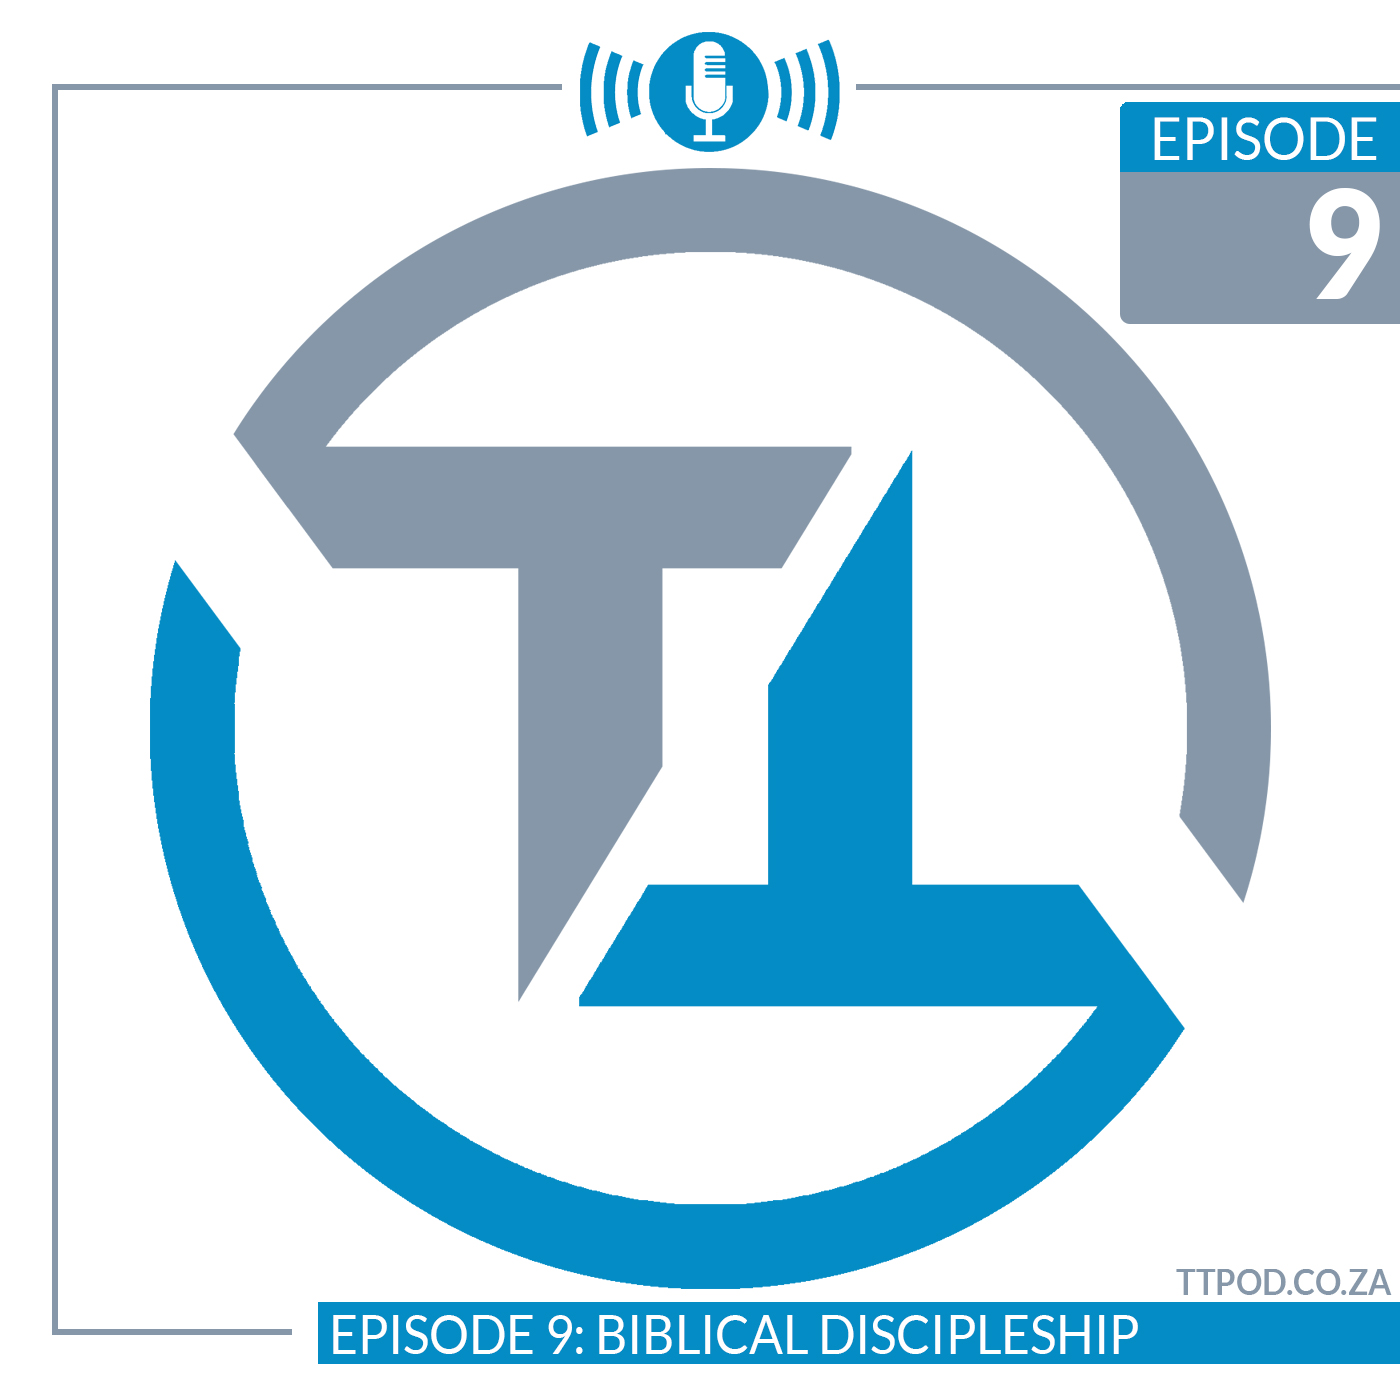 Episode 9: Biblical Discipleship